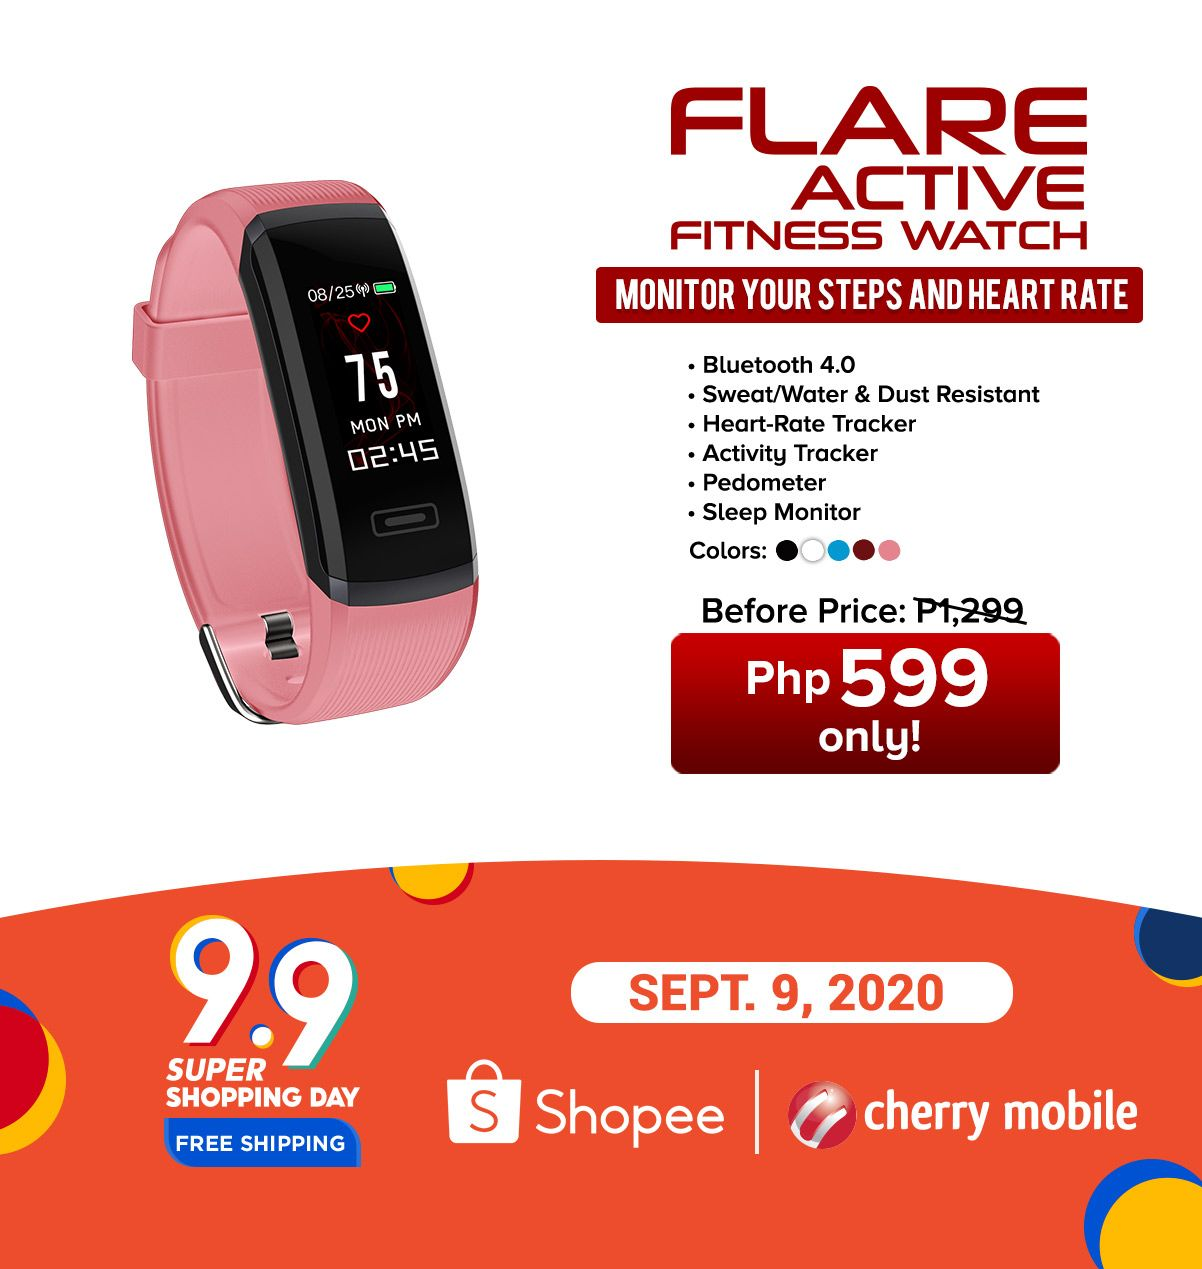 Cherry Flare Active Watch